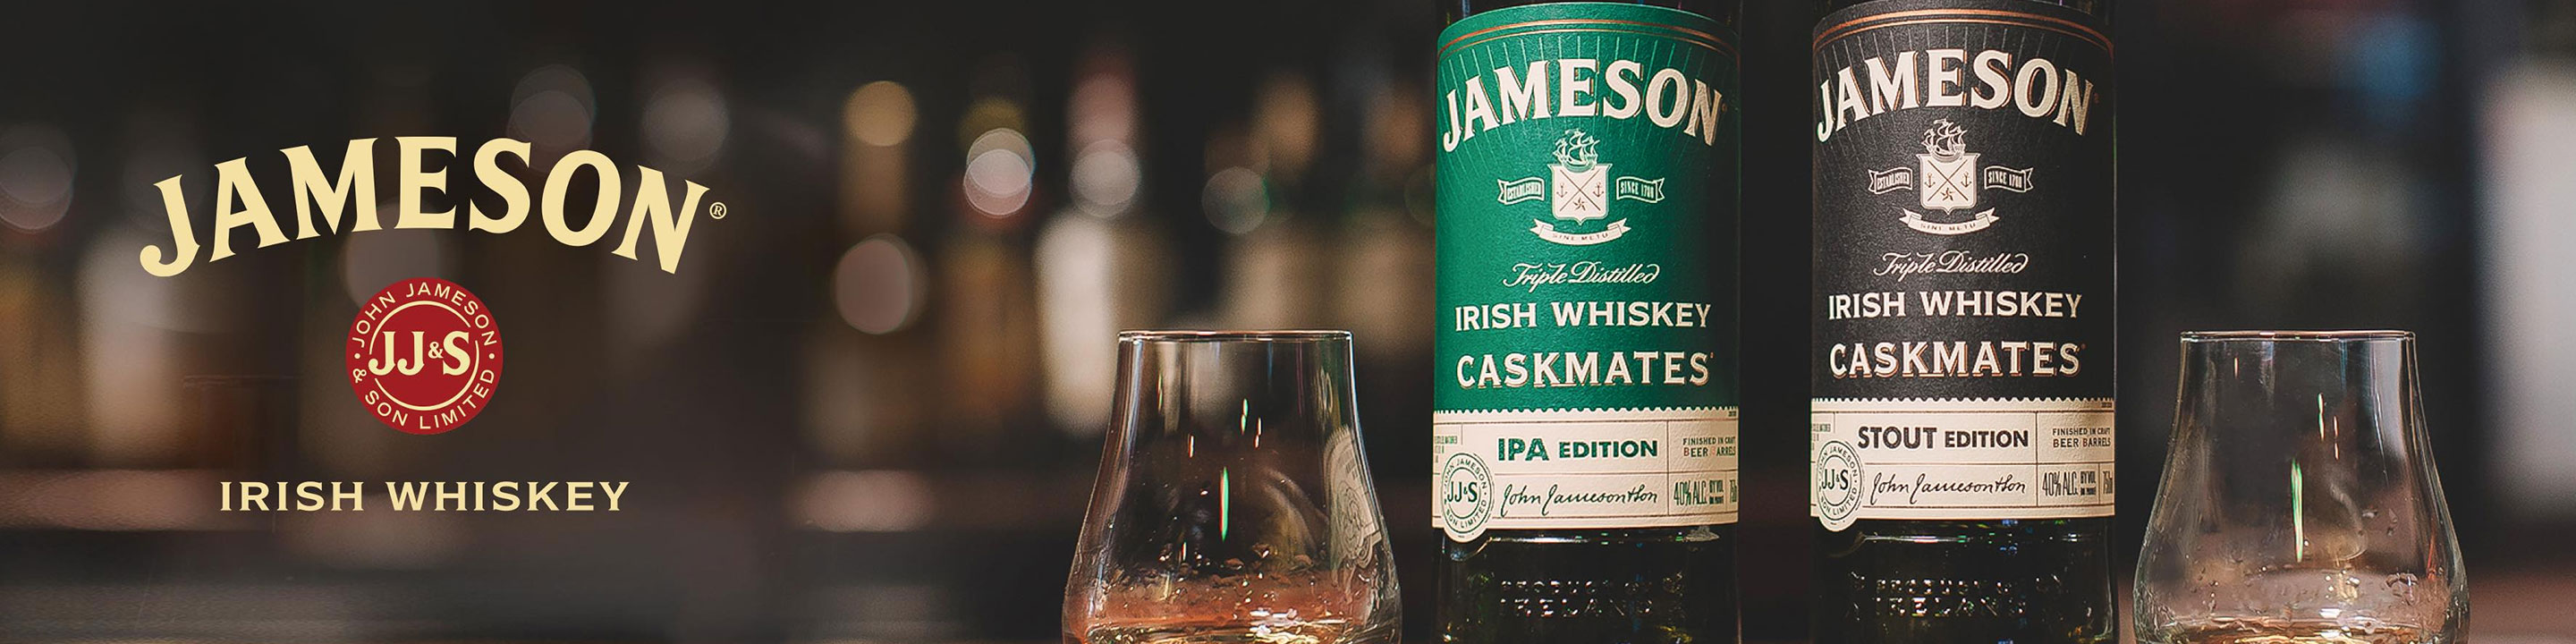 Jameson Irish Whiskey is made by blending rich pot still whiskey made from both malted and unmalted barley, with the finest grain whiskey, both distilled 3 times for smoothness.  Buy Jameson online now from your nearby liquor store via Minibar Delivery.